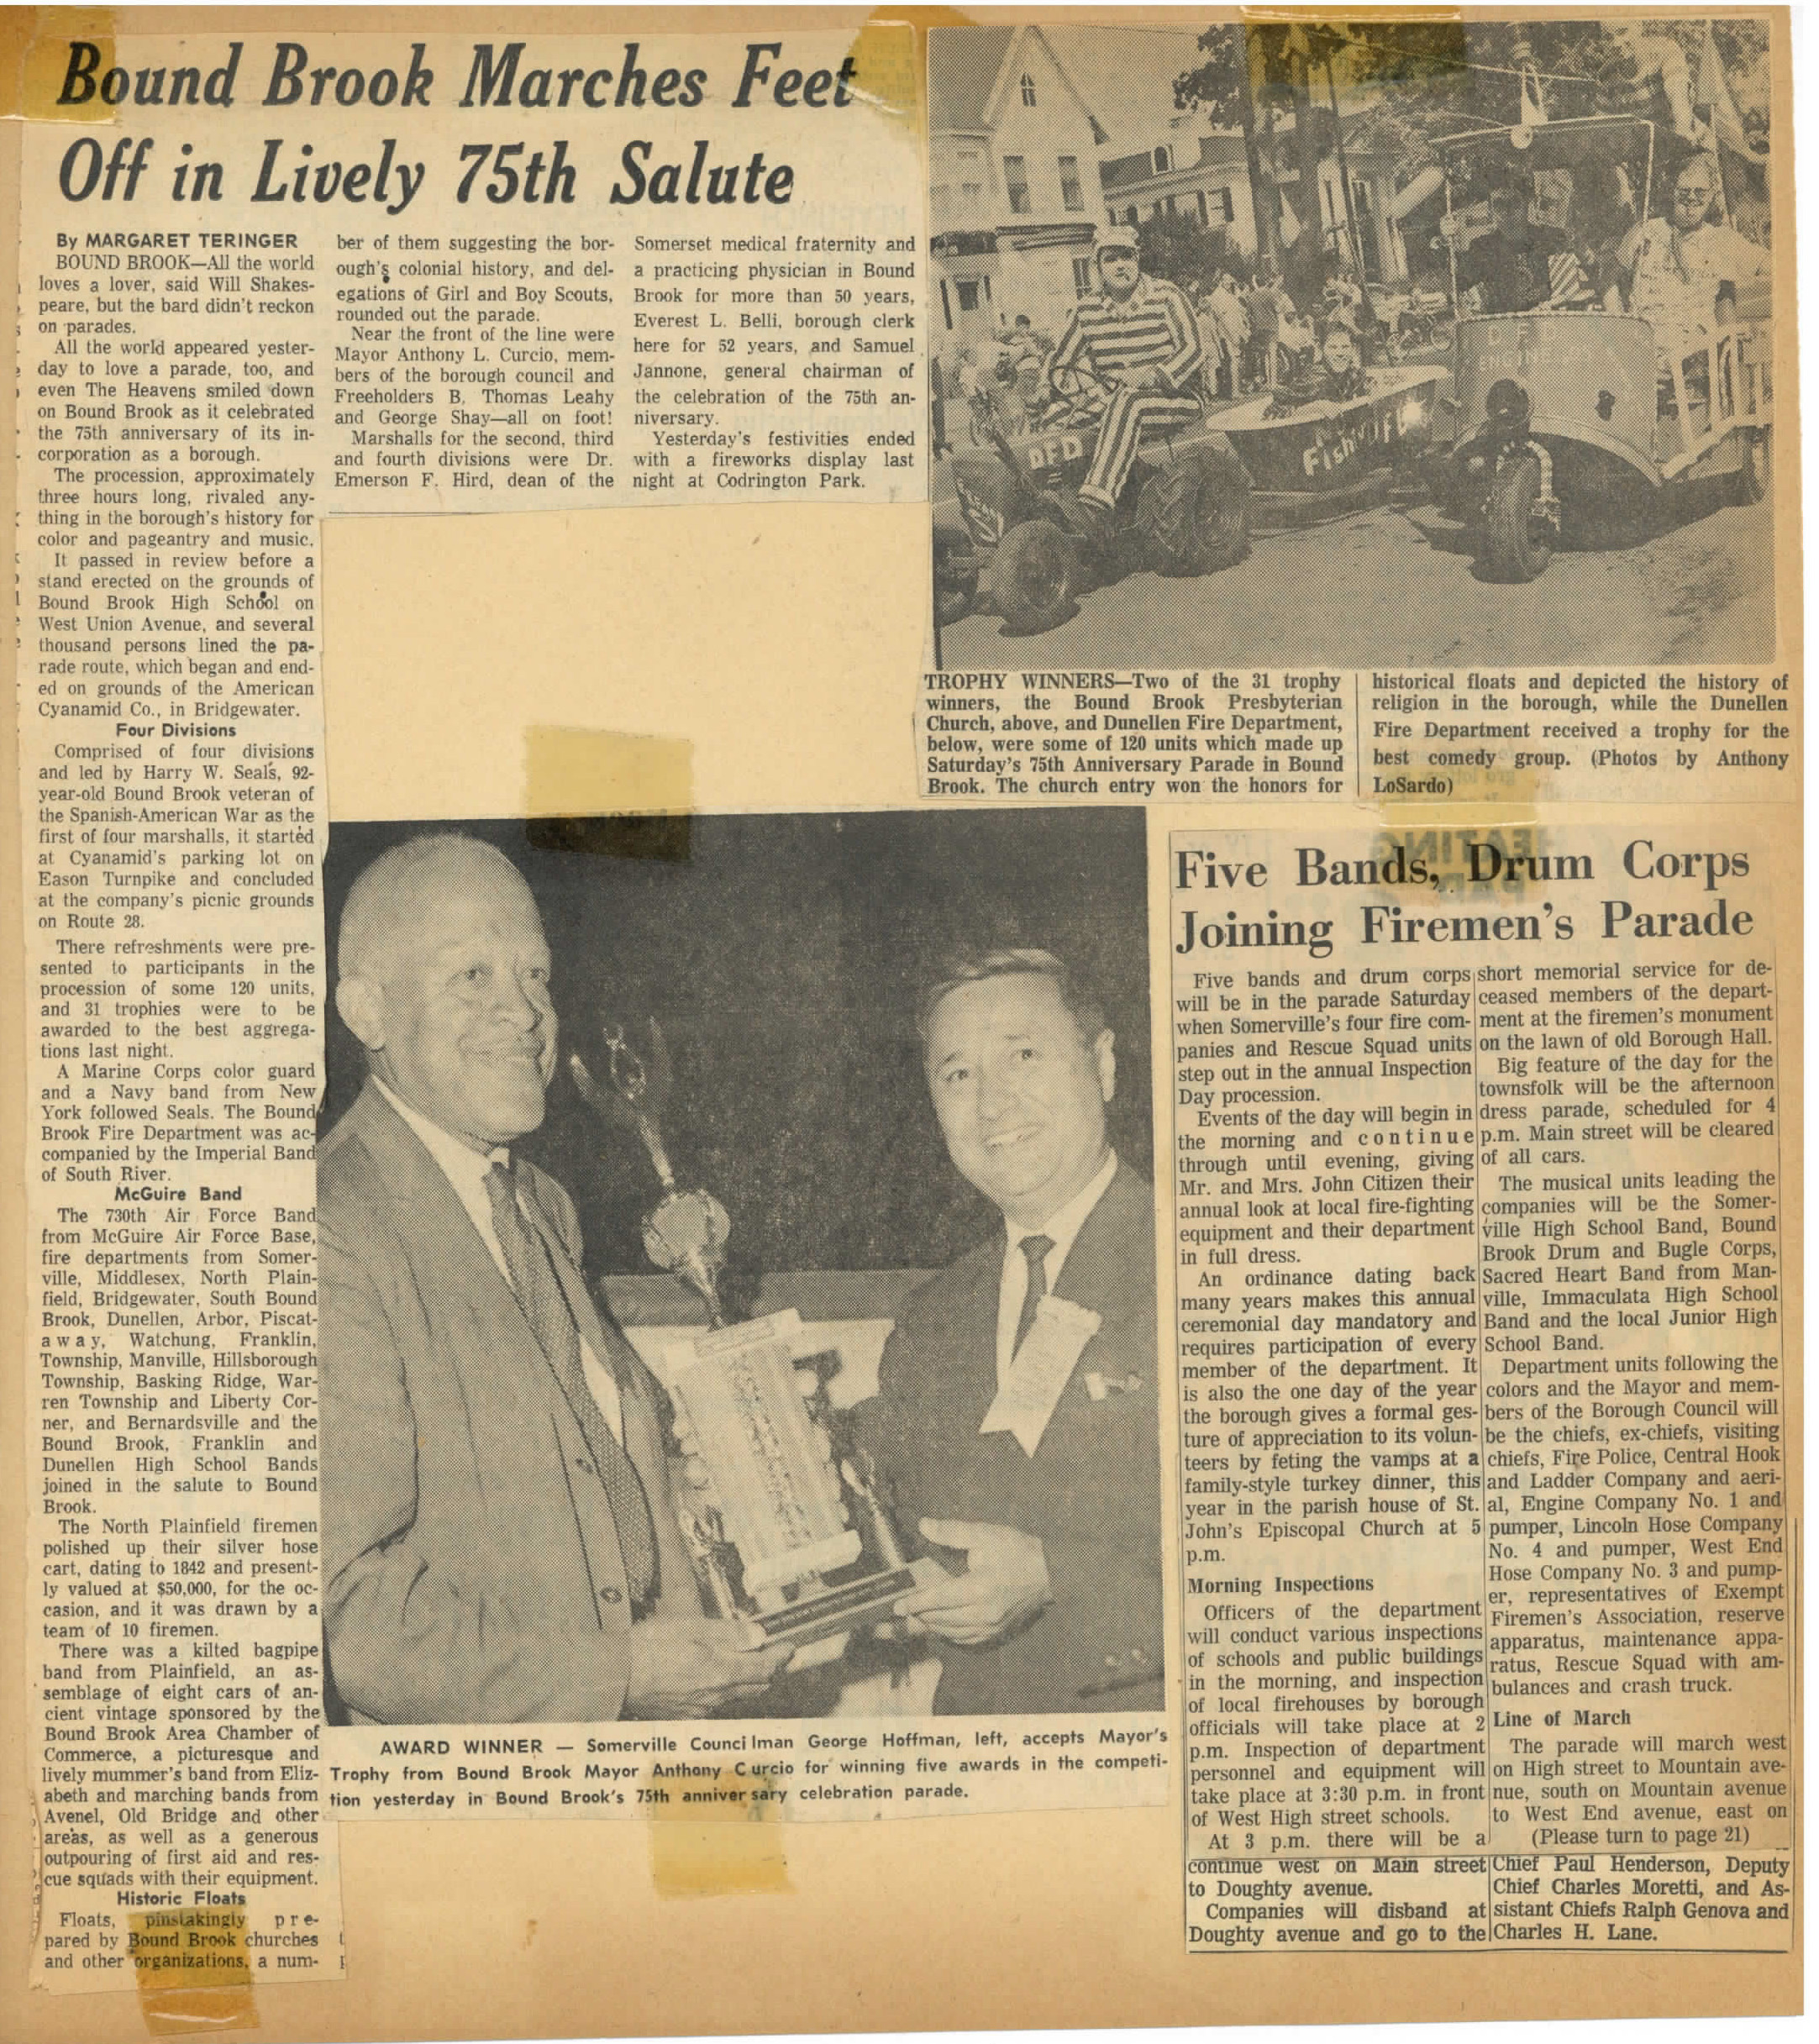 1966 Fire Preventin week.article.3_Page_1_Image_0001.jpg